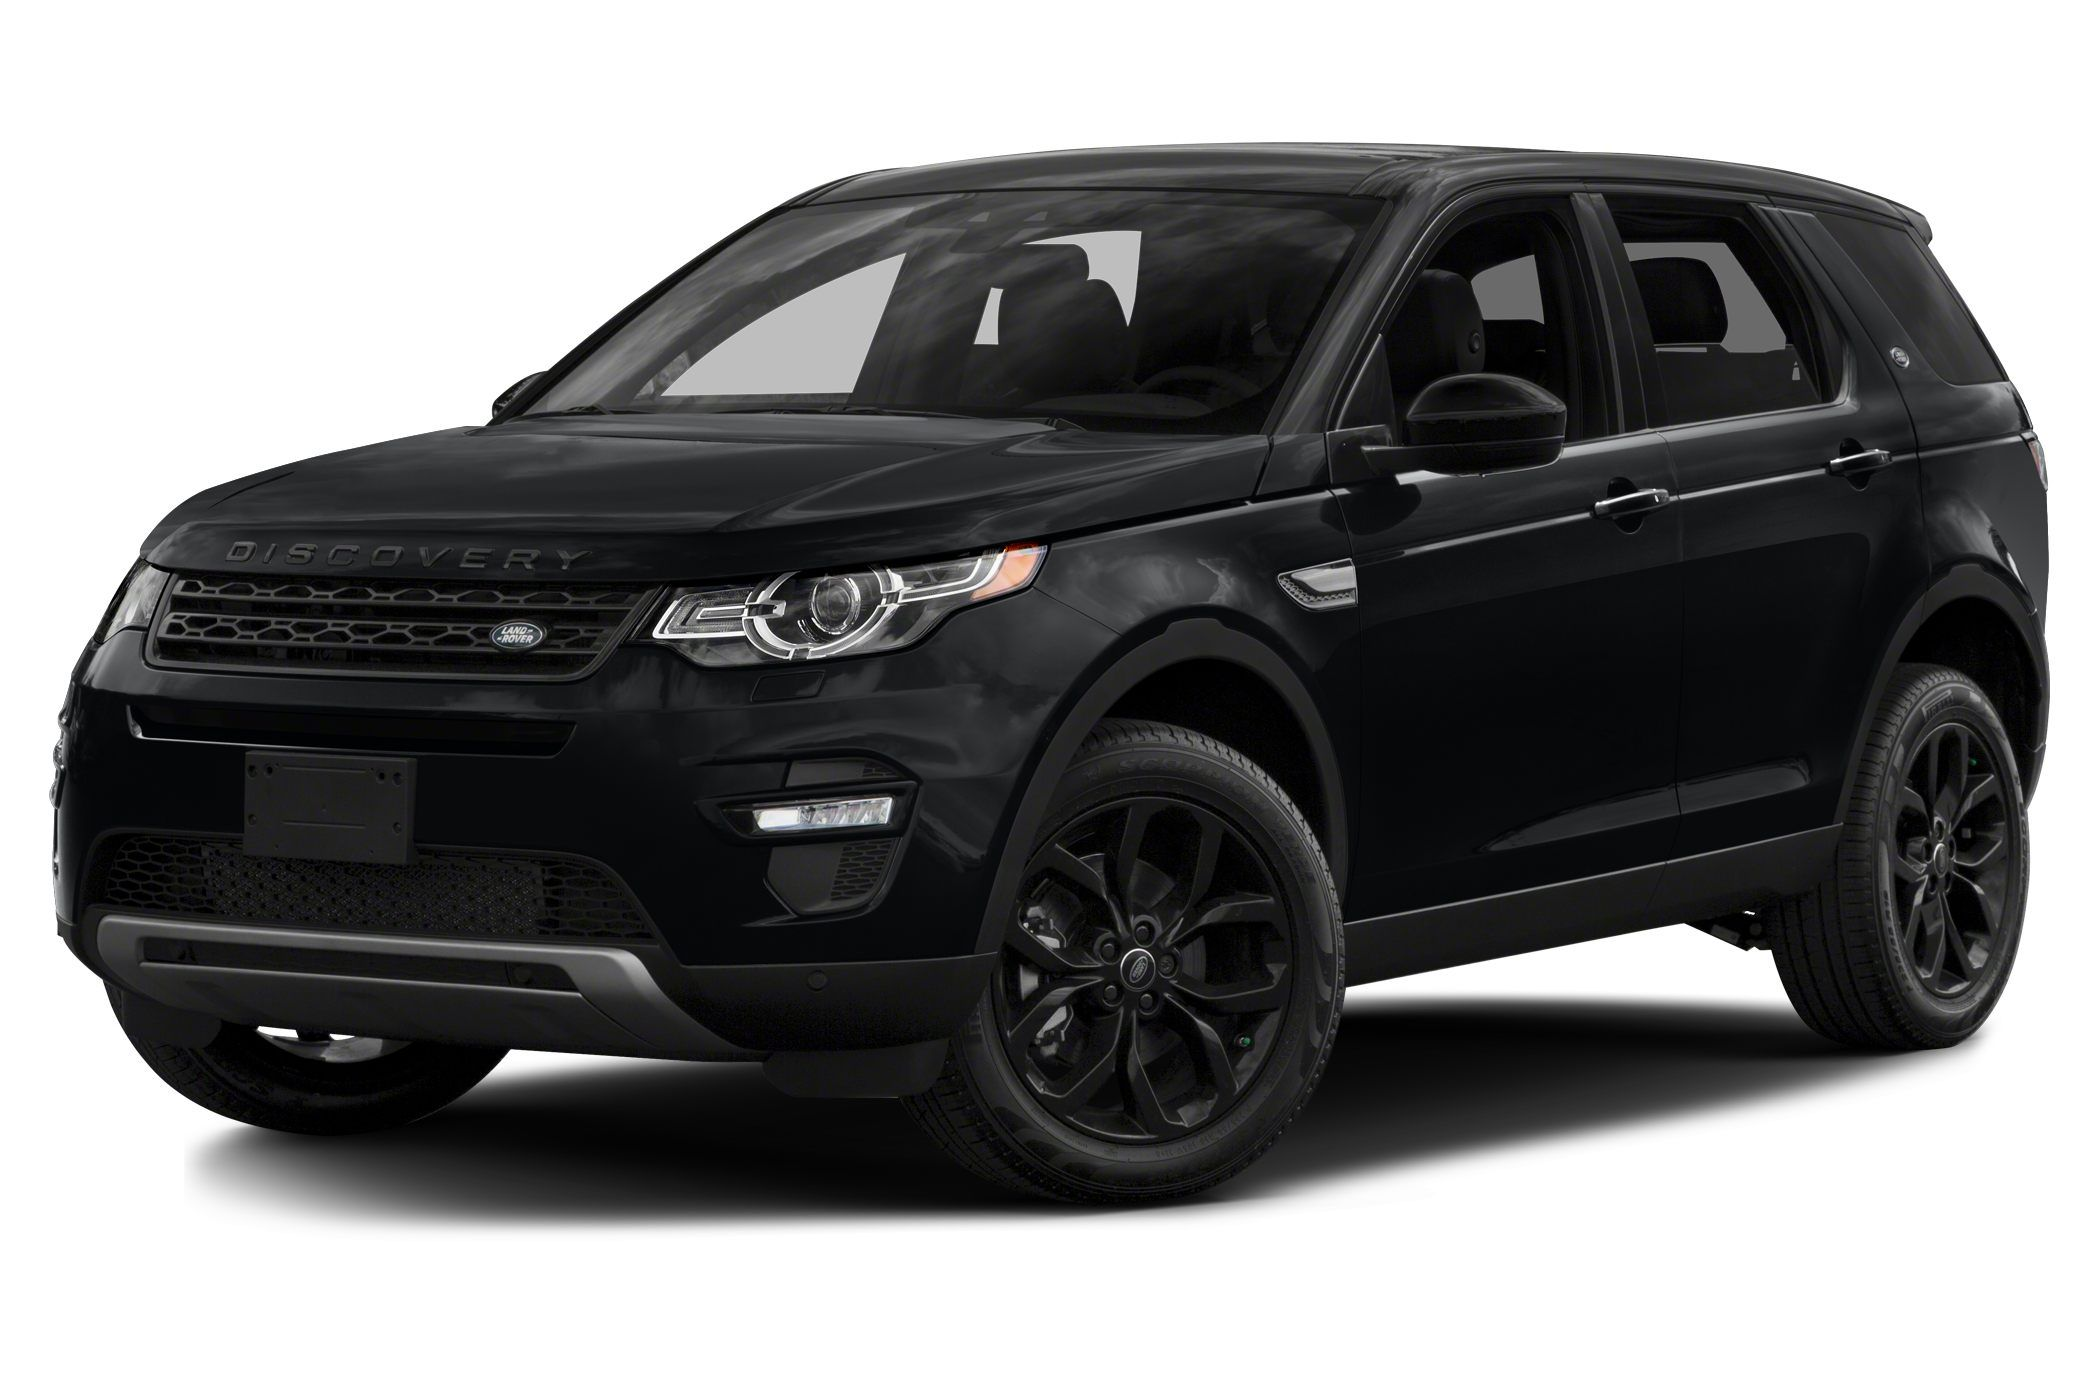 2015 Land Rover Discovery Sport Review Land Rover Discovery Sport Land Rover Discovery Range Rover Discovery